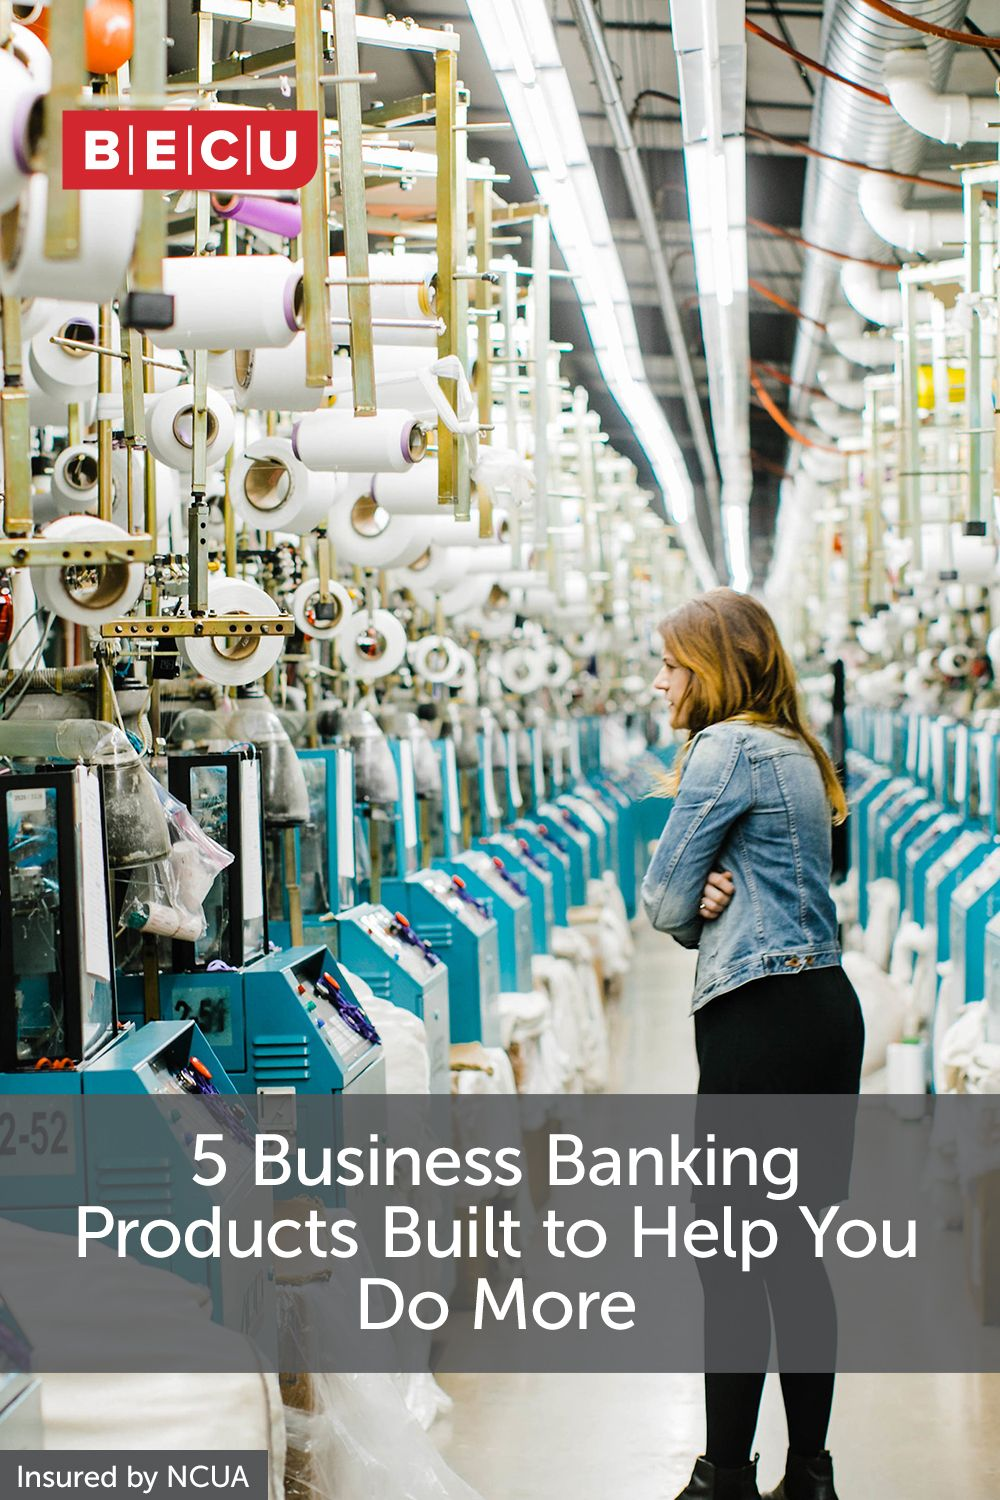 5 business banking products built to help you do more